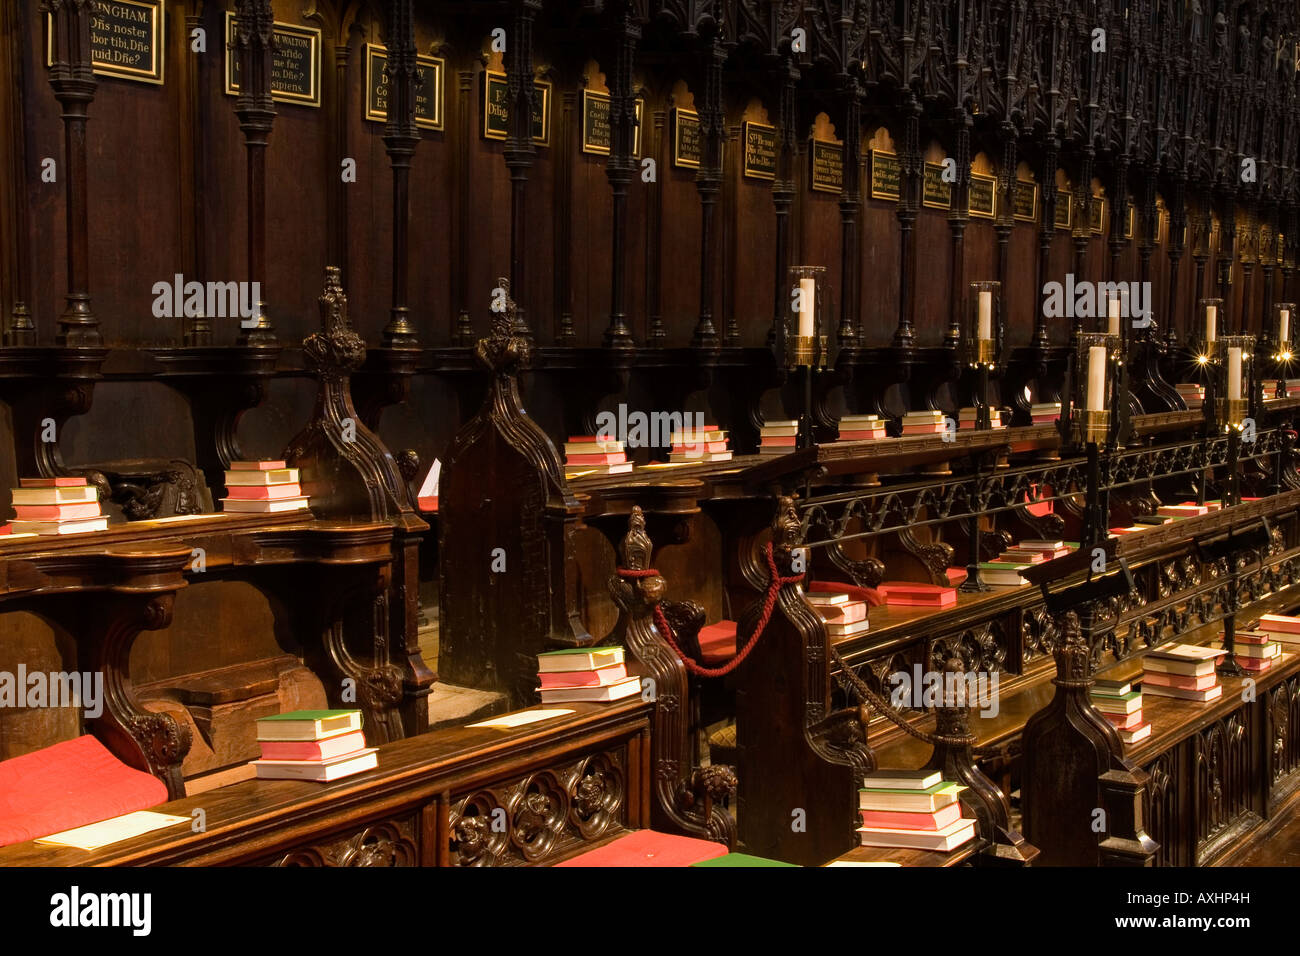 Choir stalls, inside Lincoln Cathedral, UK - Stock Image